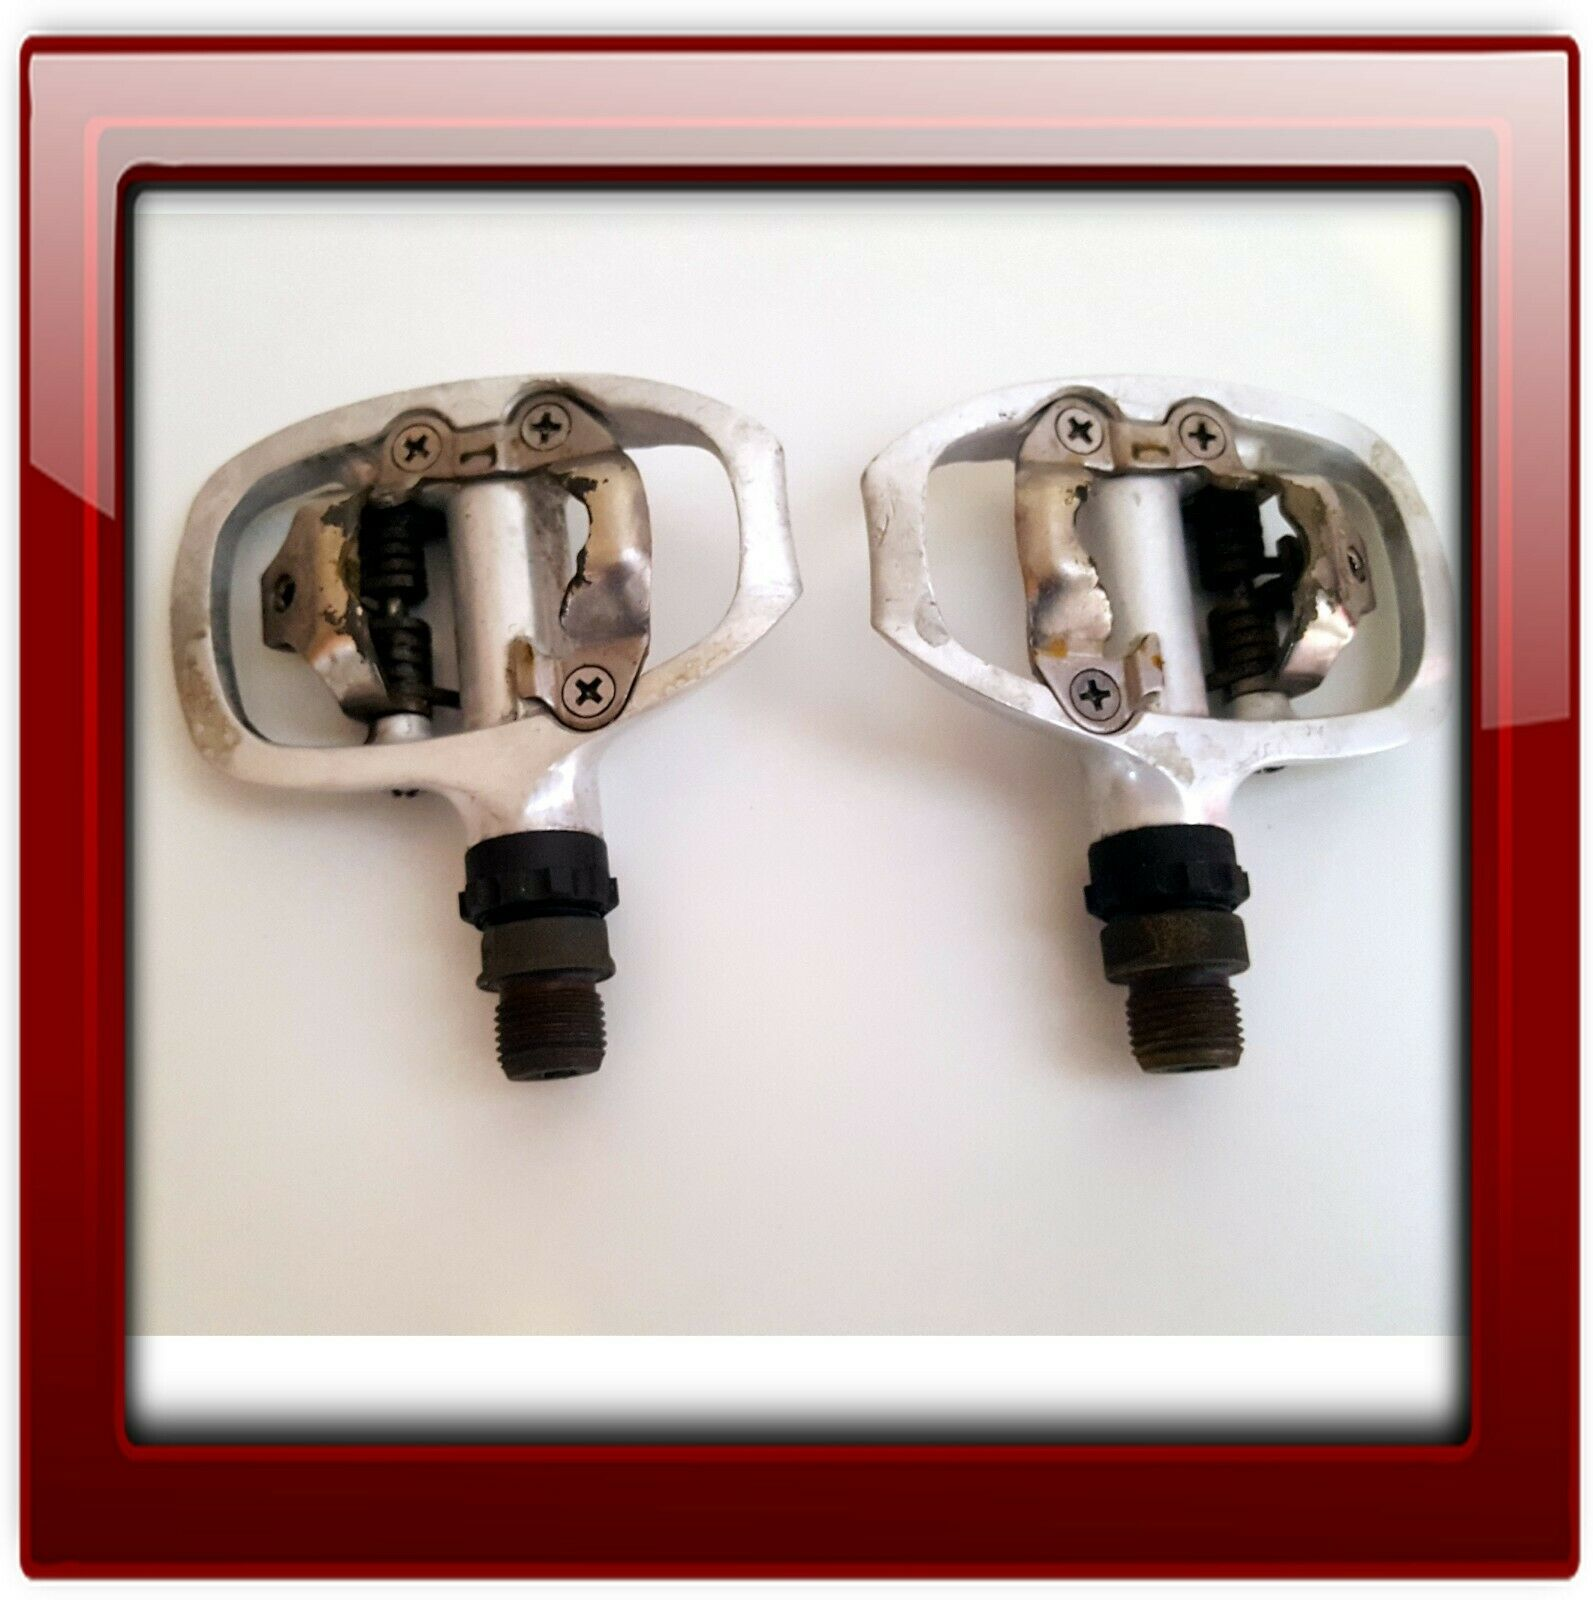 SHIMANO TIAGRA PD-A520 SPD ROAD//TOURING CYCLING PEDALS W//SM-SH51 CLEATS